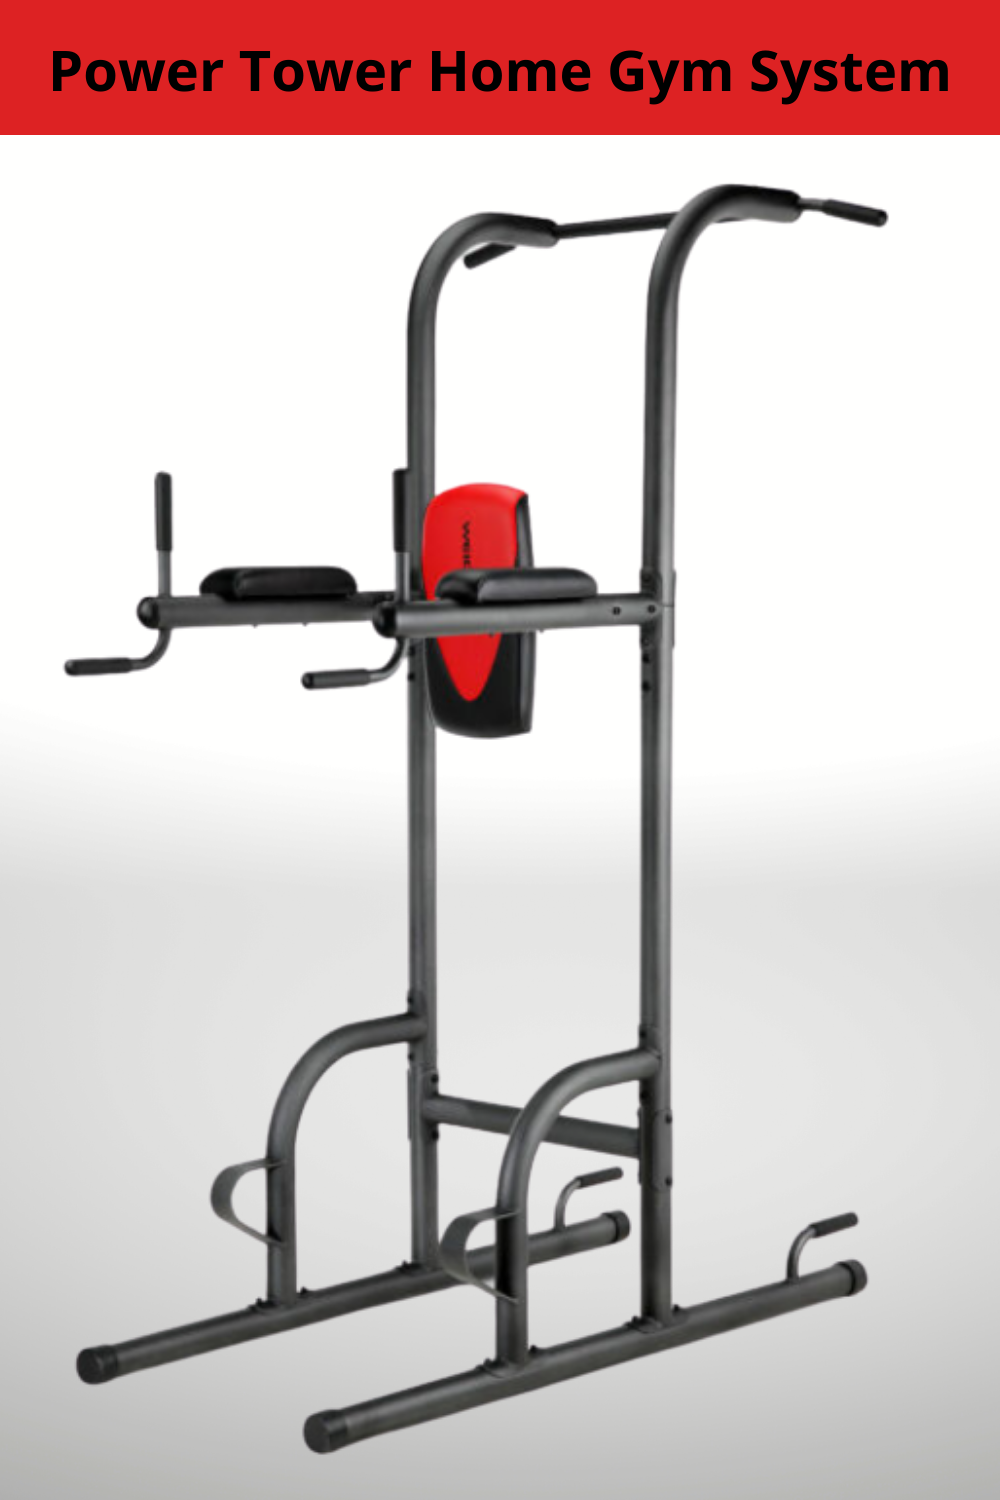 Best selling product in Strength Training Home Gyms Weider WEBE0914 Power Tower Home Gym System - Affiliate Disclosure: We may earn commissions from purchases made through links in this post